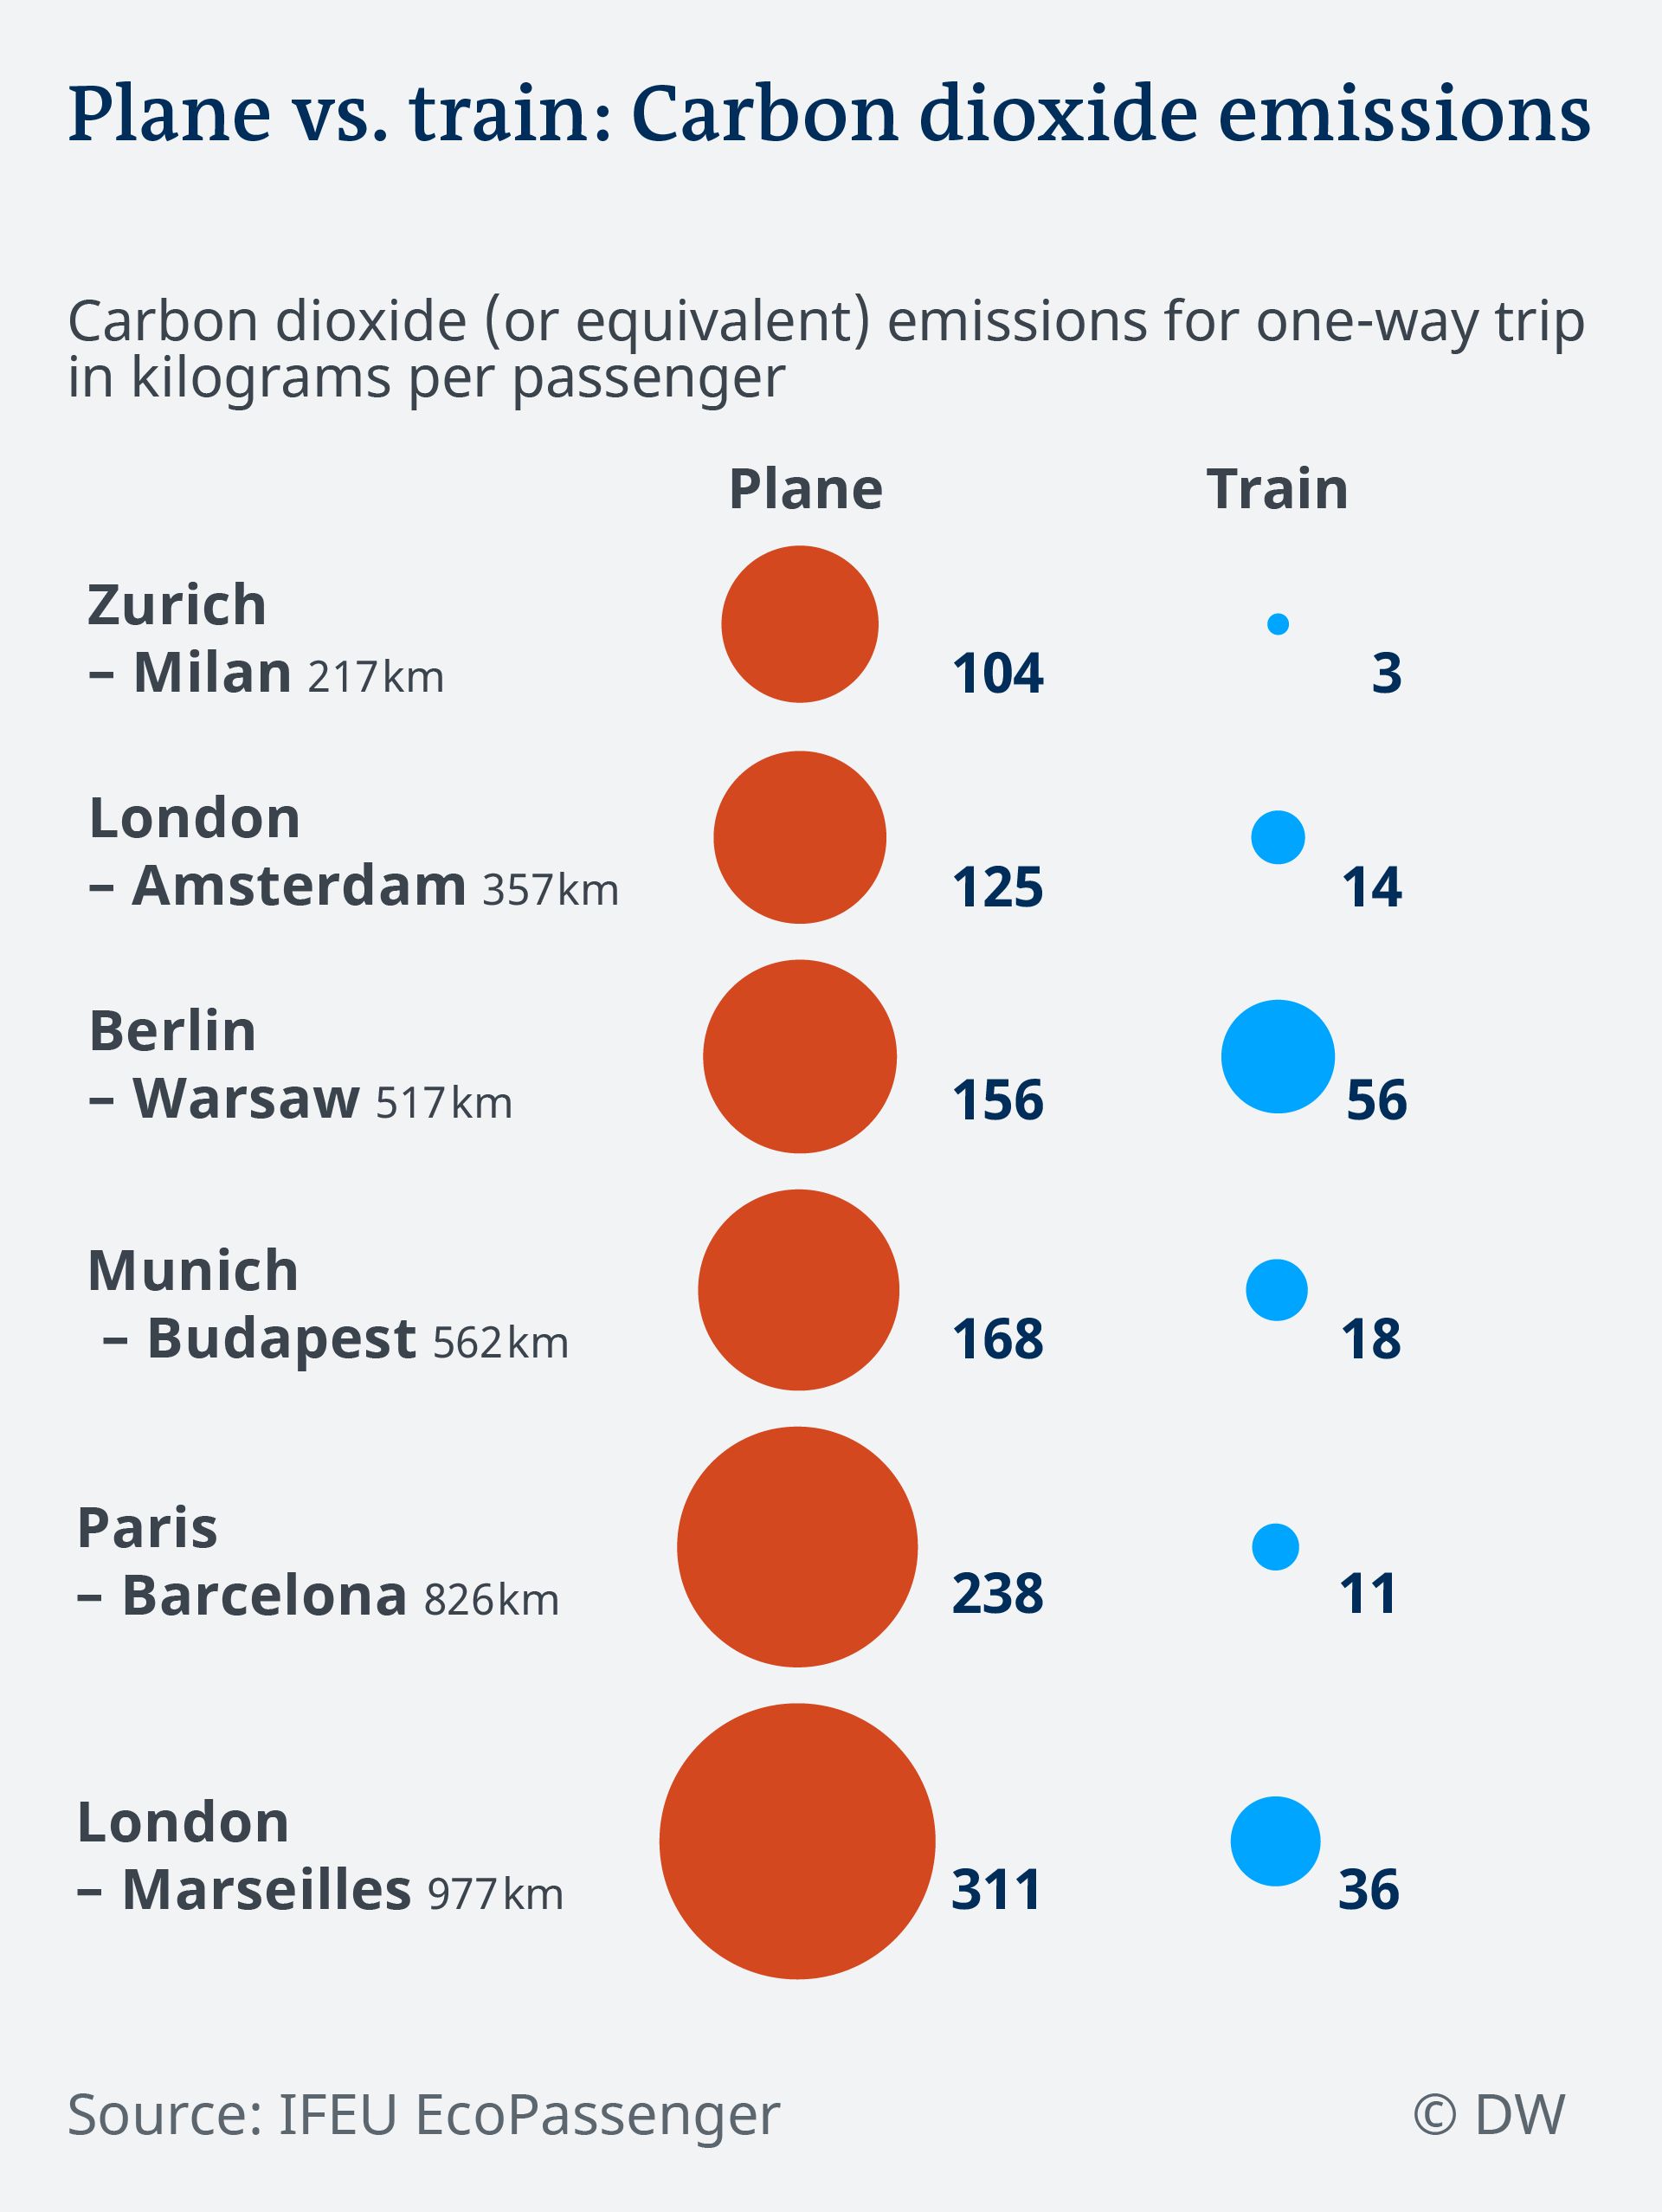 Data visualization: CO2 emissions of trains vs planes